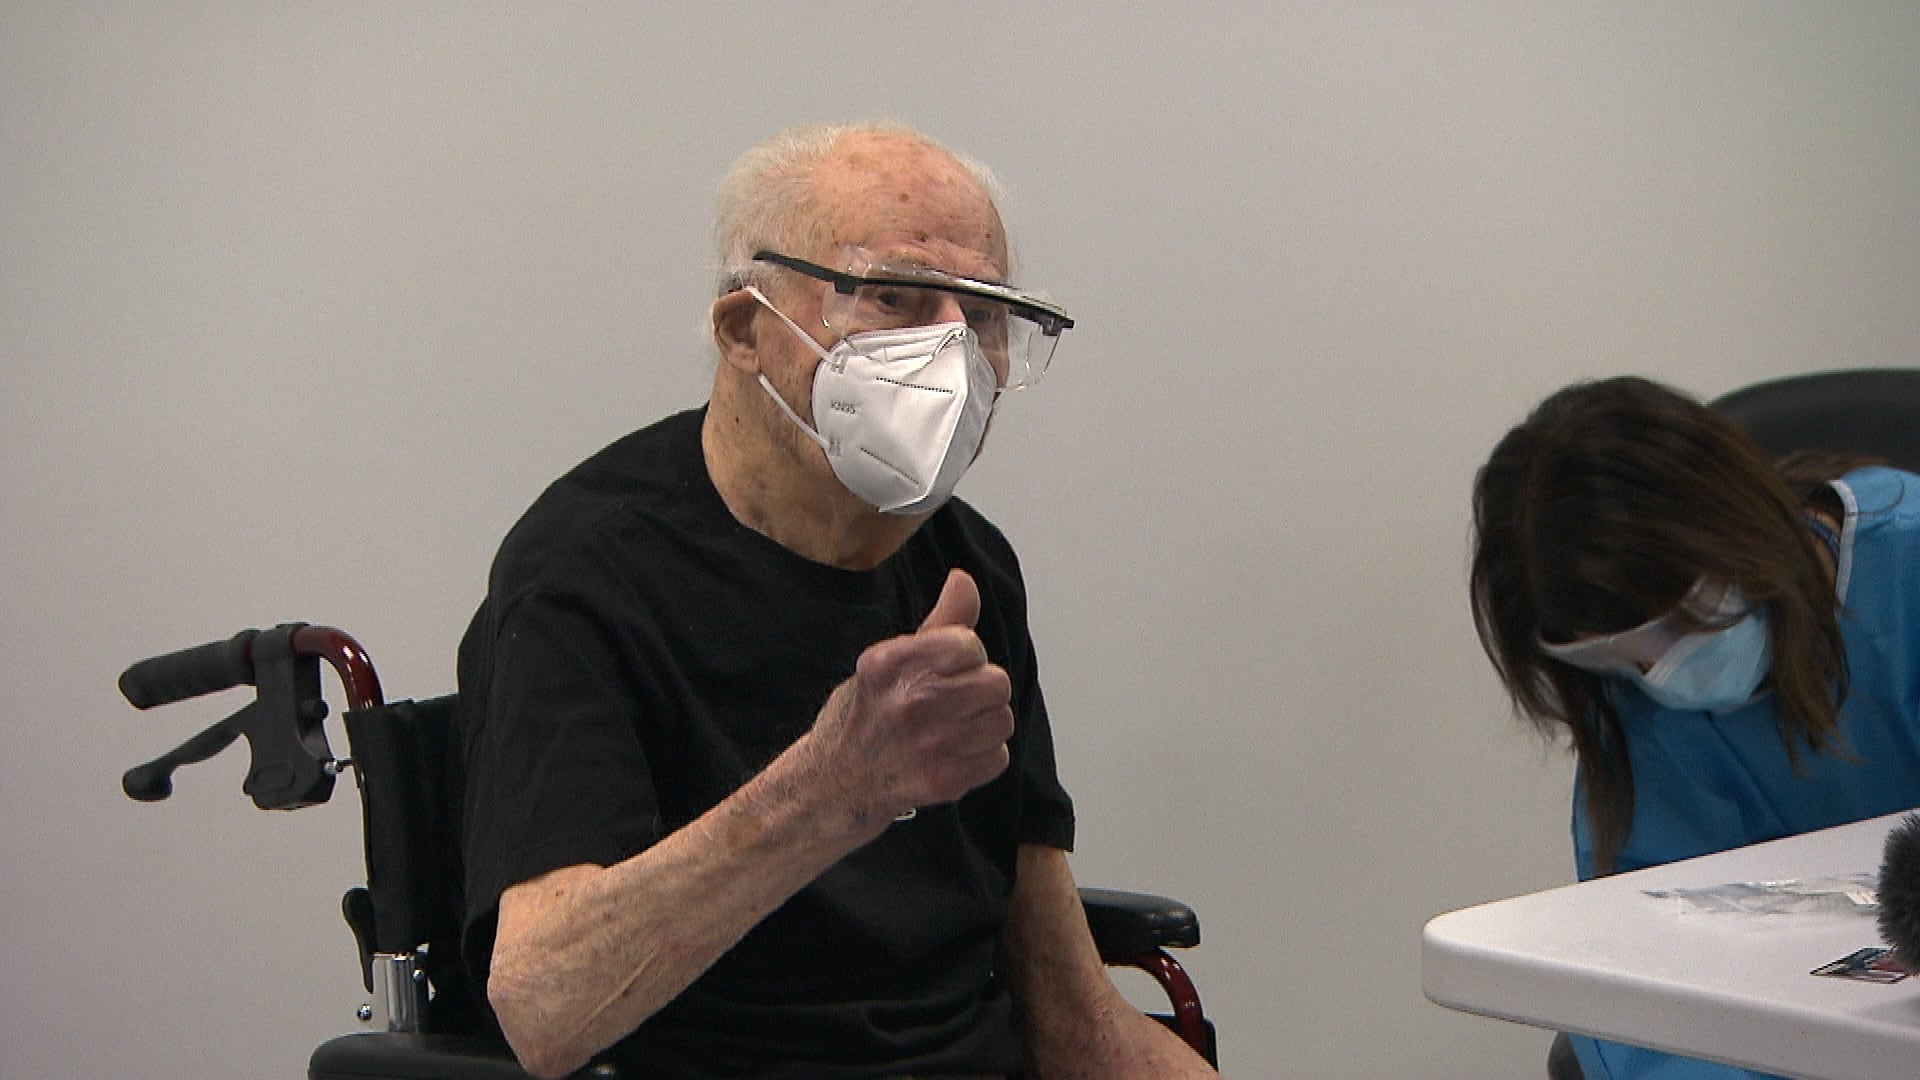 After getting his COVID-19 vaccine, this 103-year-old jazz musician was ready to do some drinking